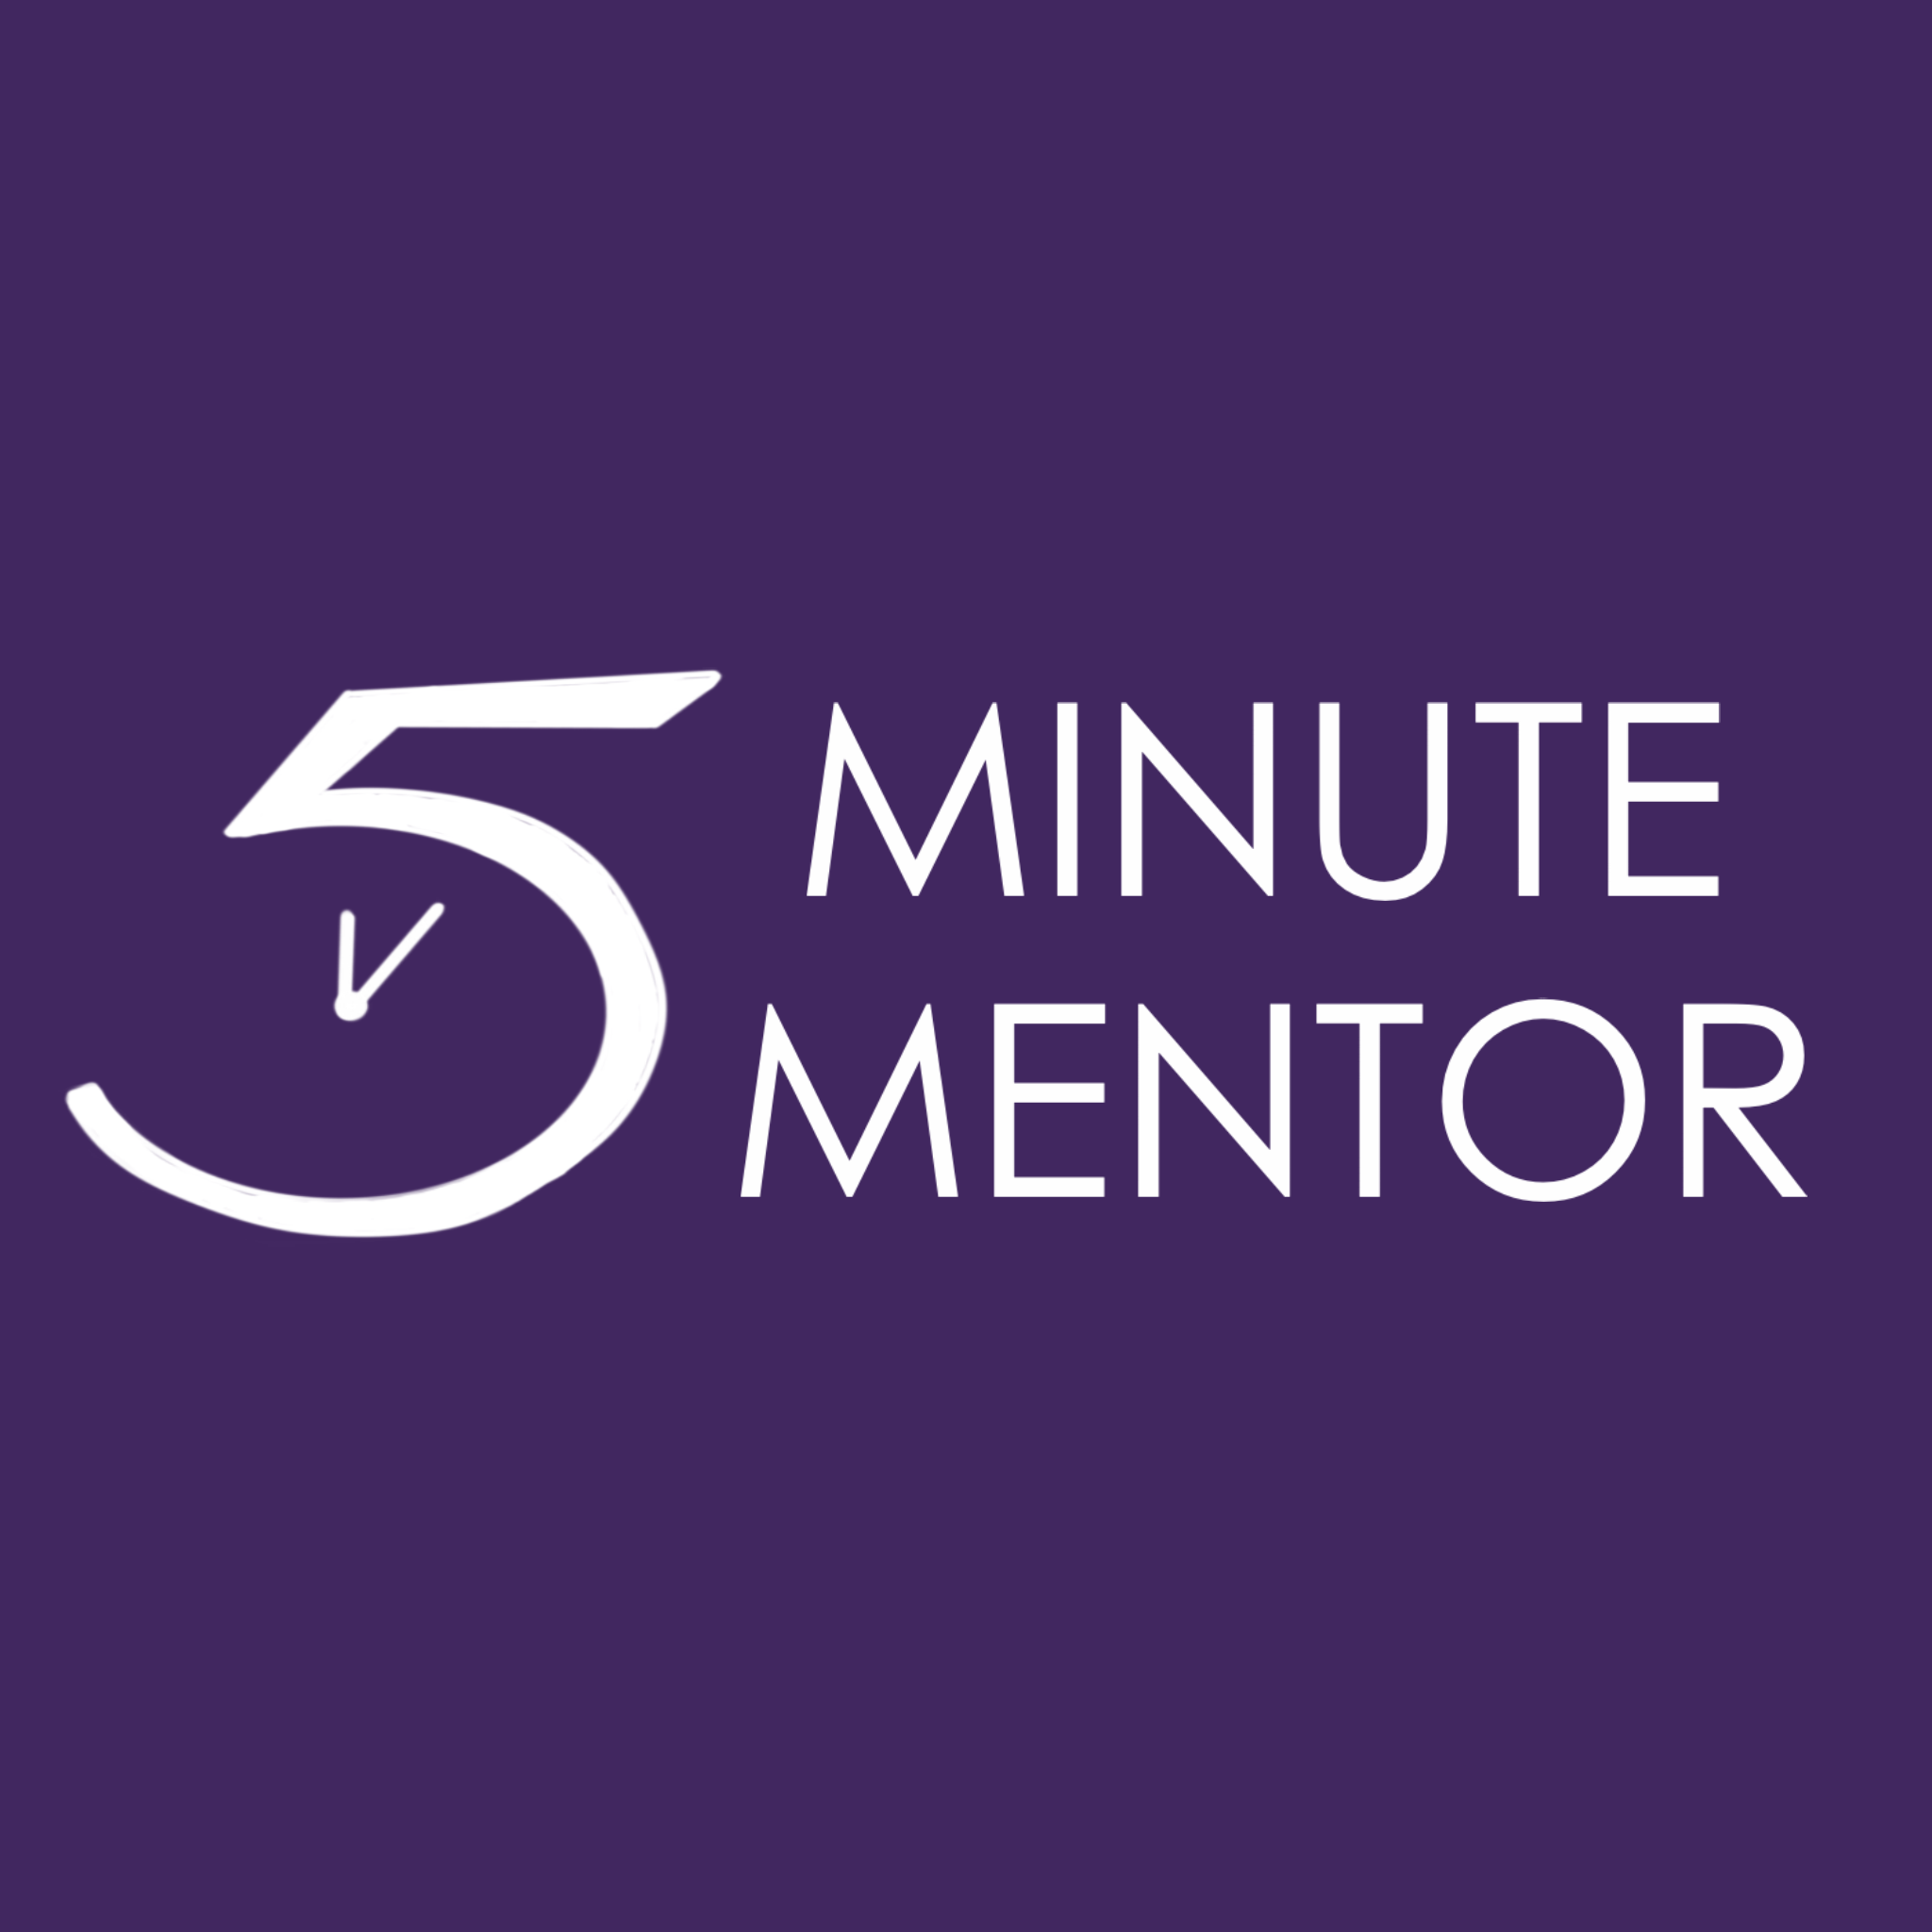 5 Minute Mentor